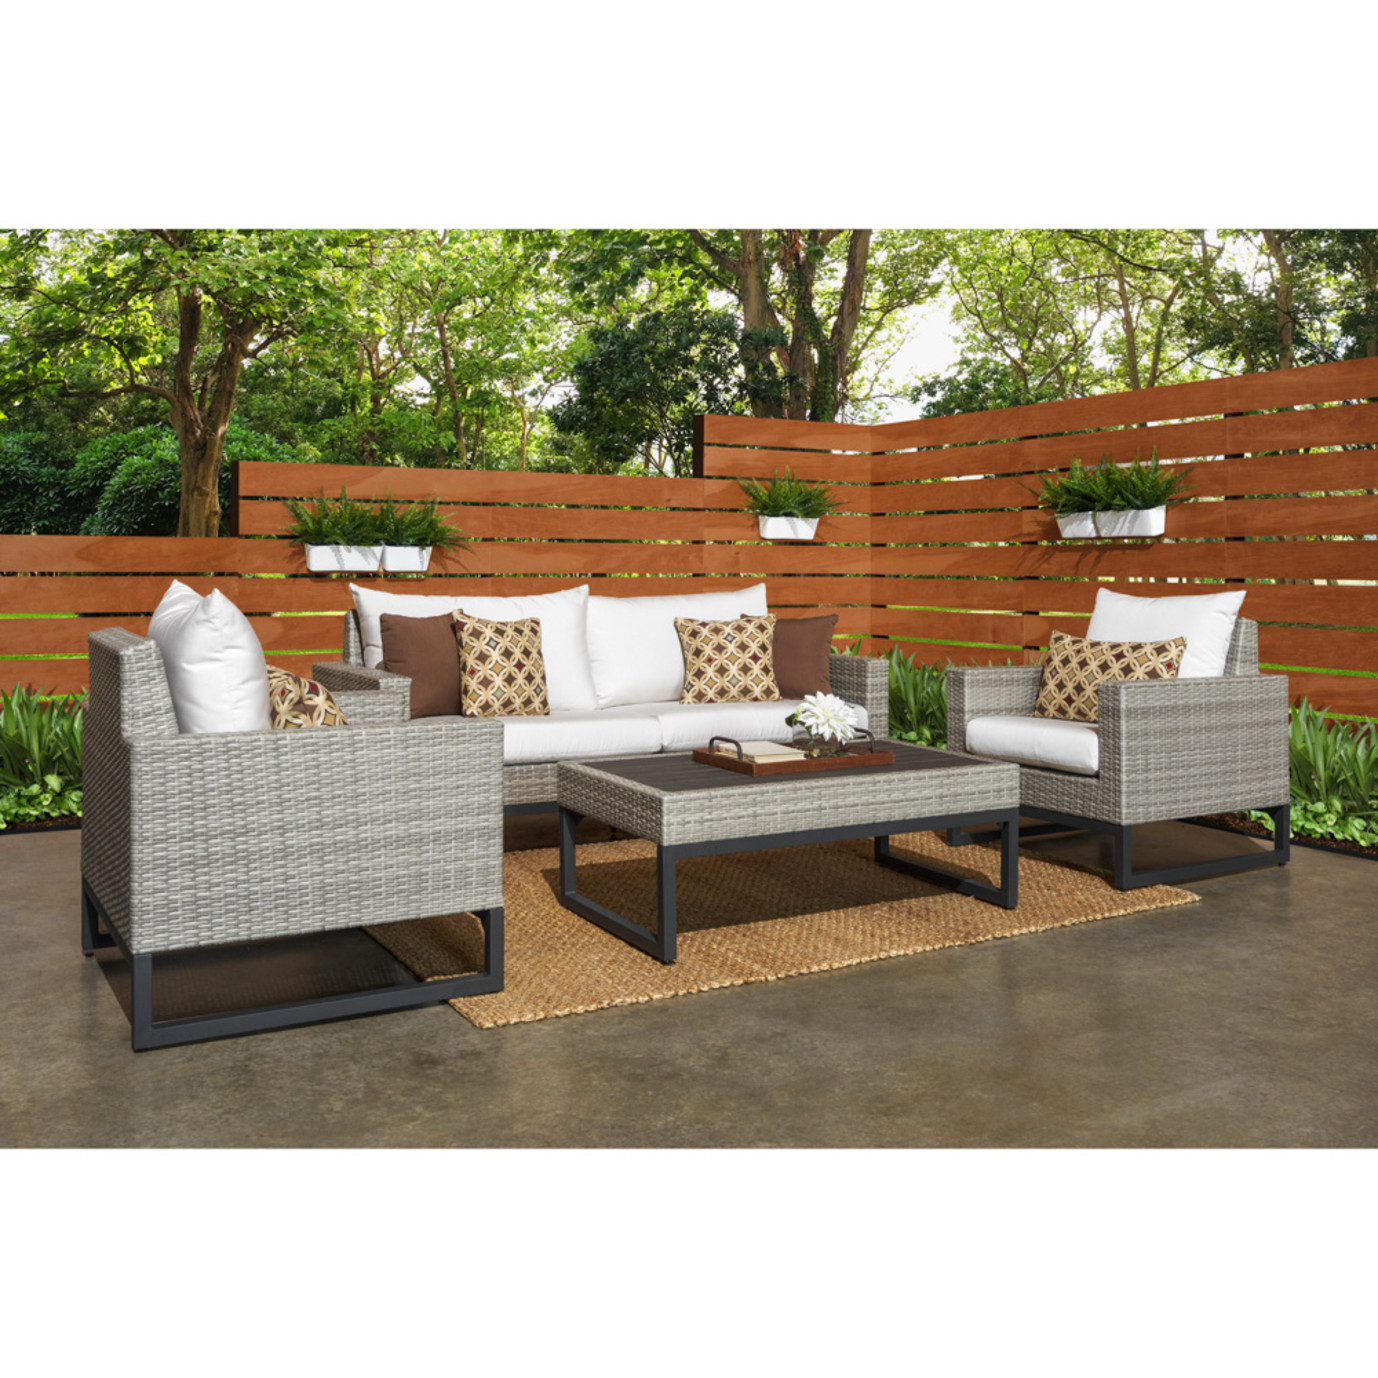 Milo™ Gray 4pc Seating Set - Moroccan Cream